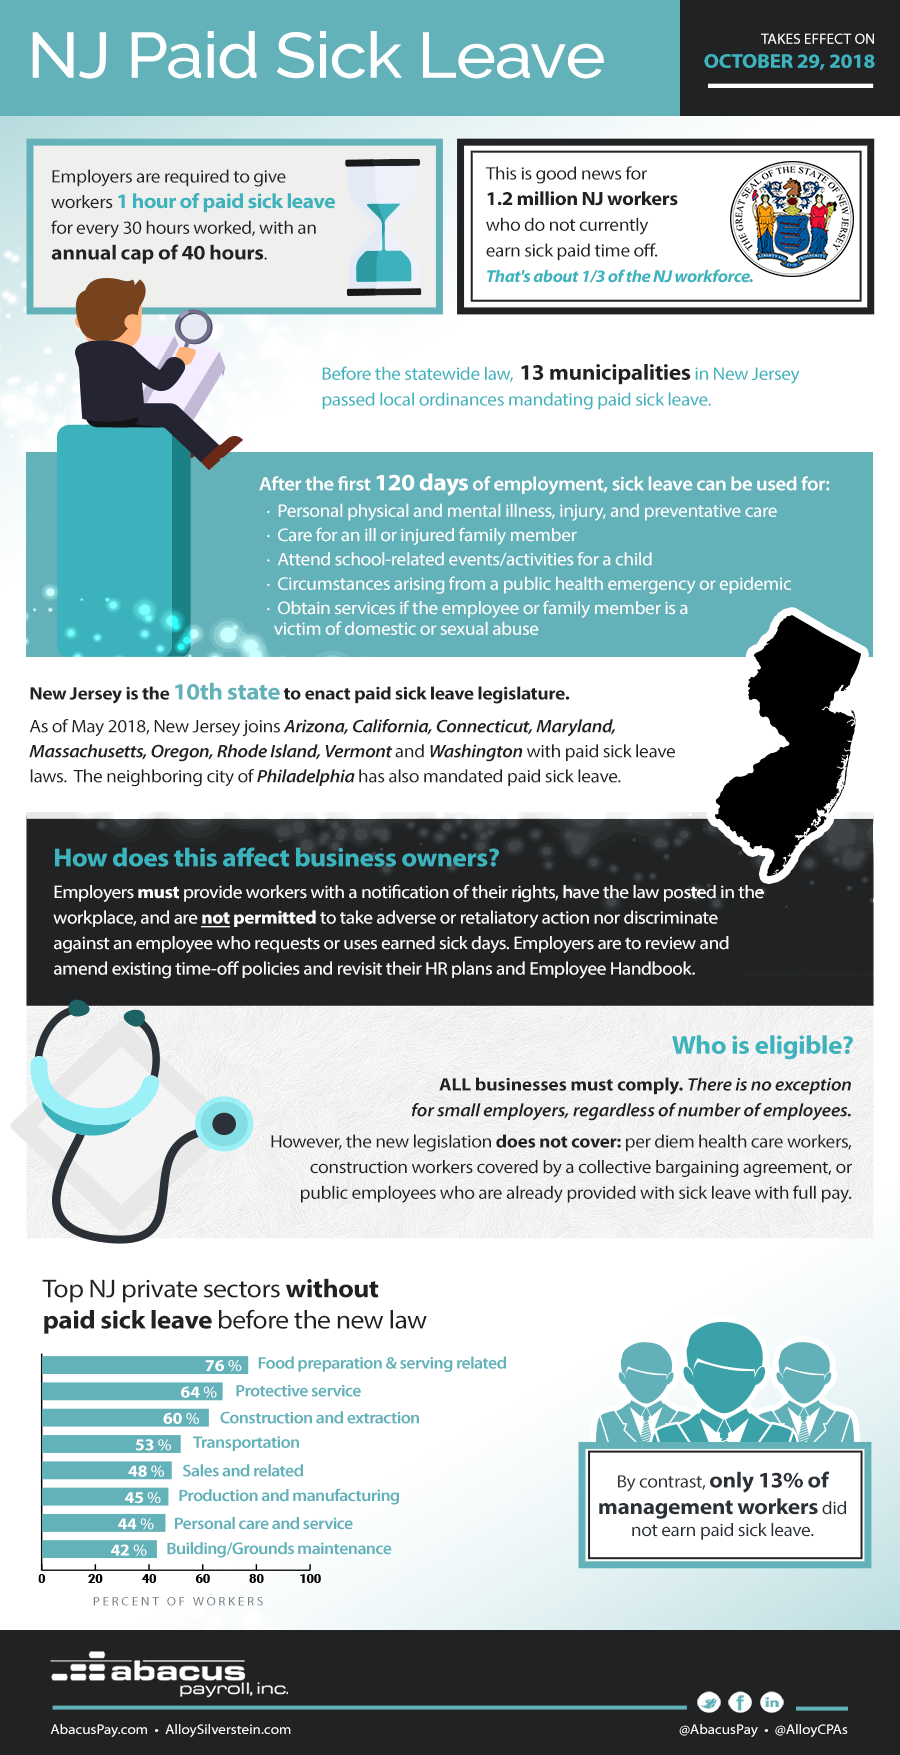 New Jersey NJ Paid Sick Leave Law Infographic on Facts and Figures